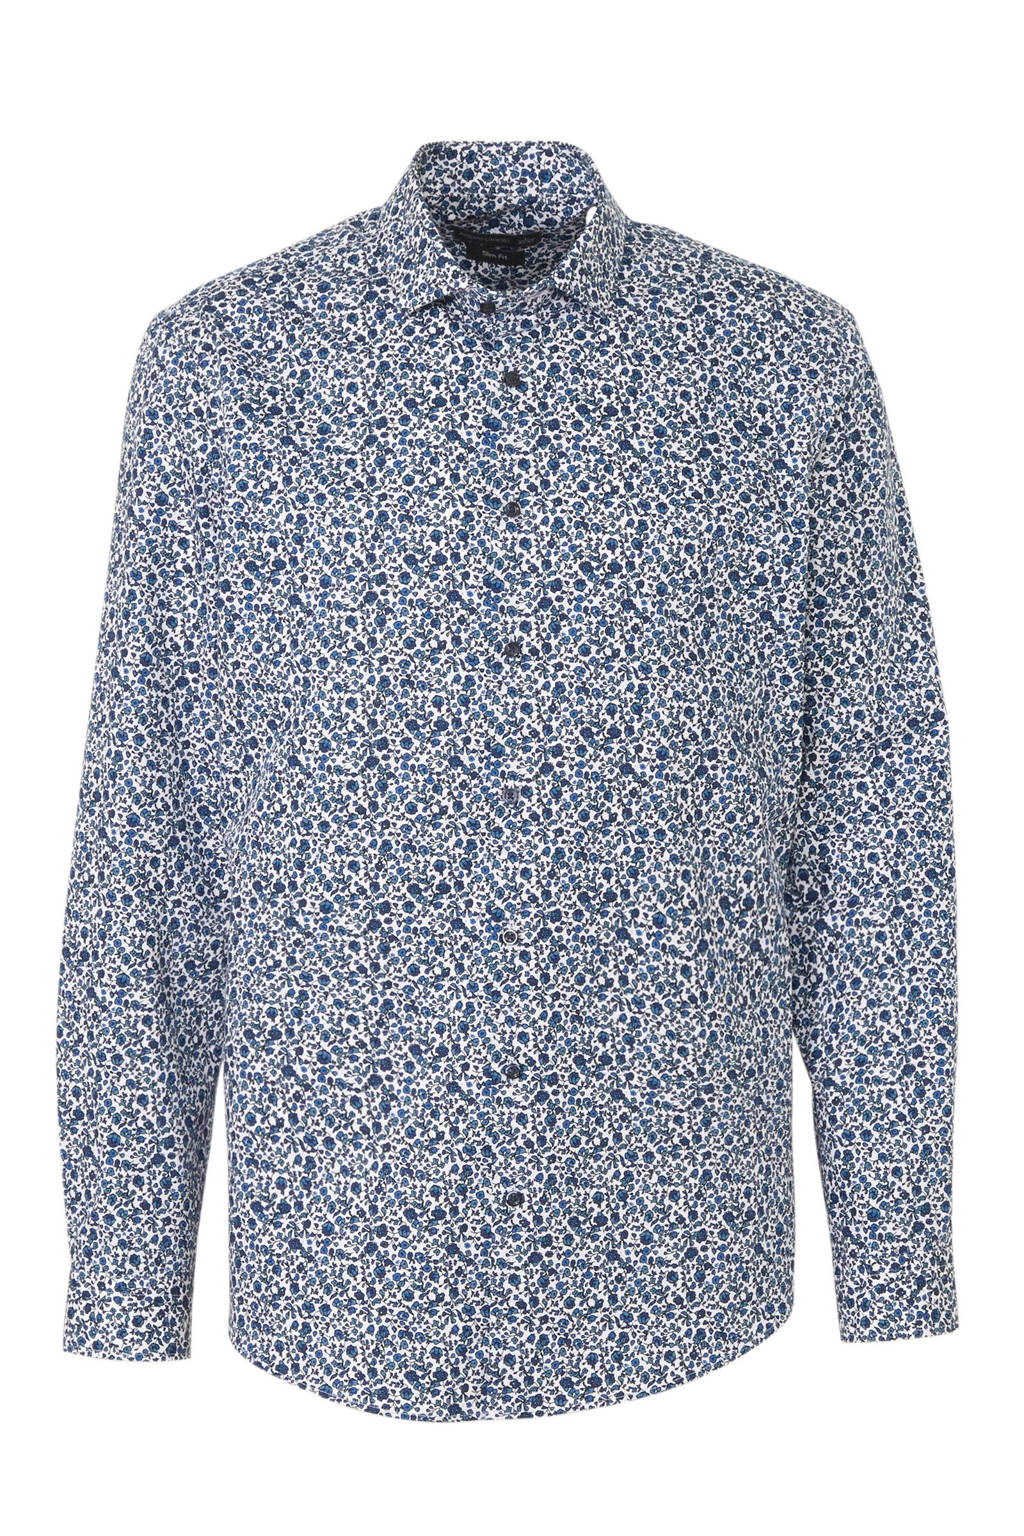 C&A Angelo Litrico slim fit overhemd met all over print blauw, Blauw